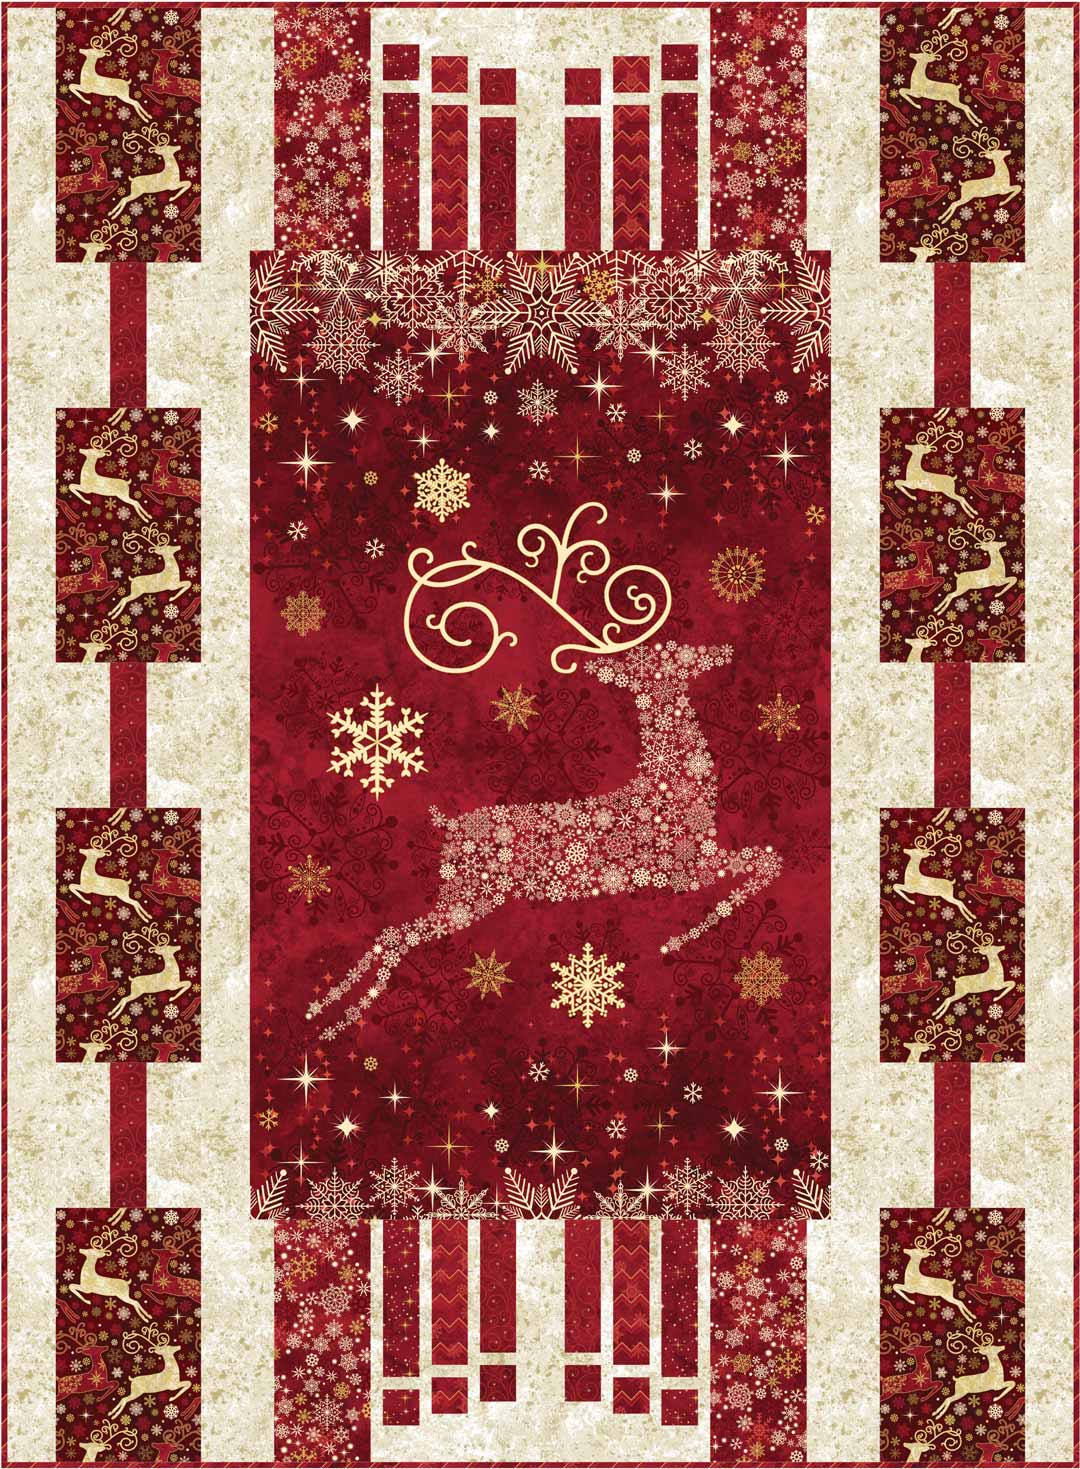 Christmas Quilt.Dazzle Christmas Panel Quilt Download Pattern